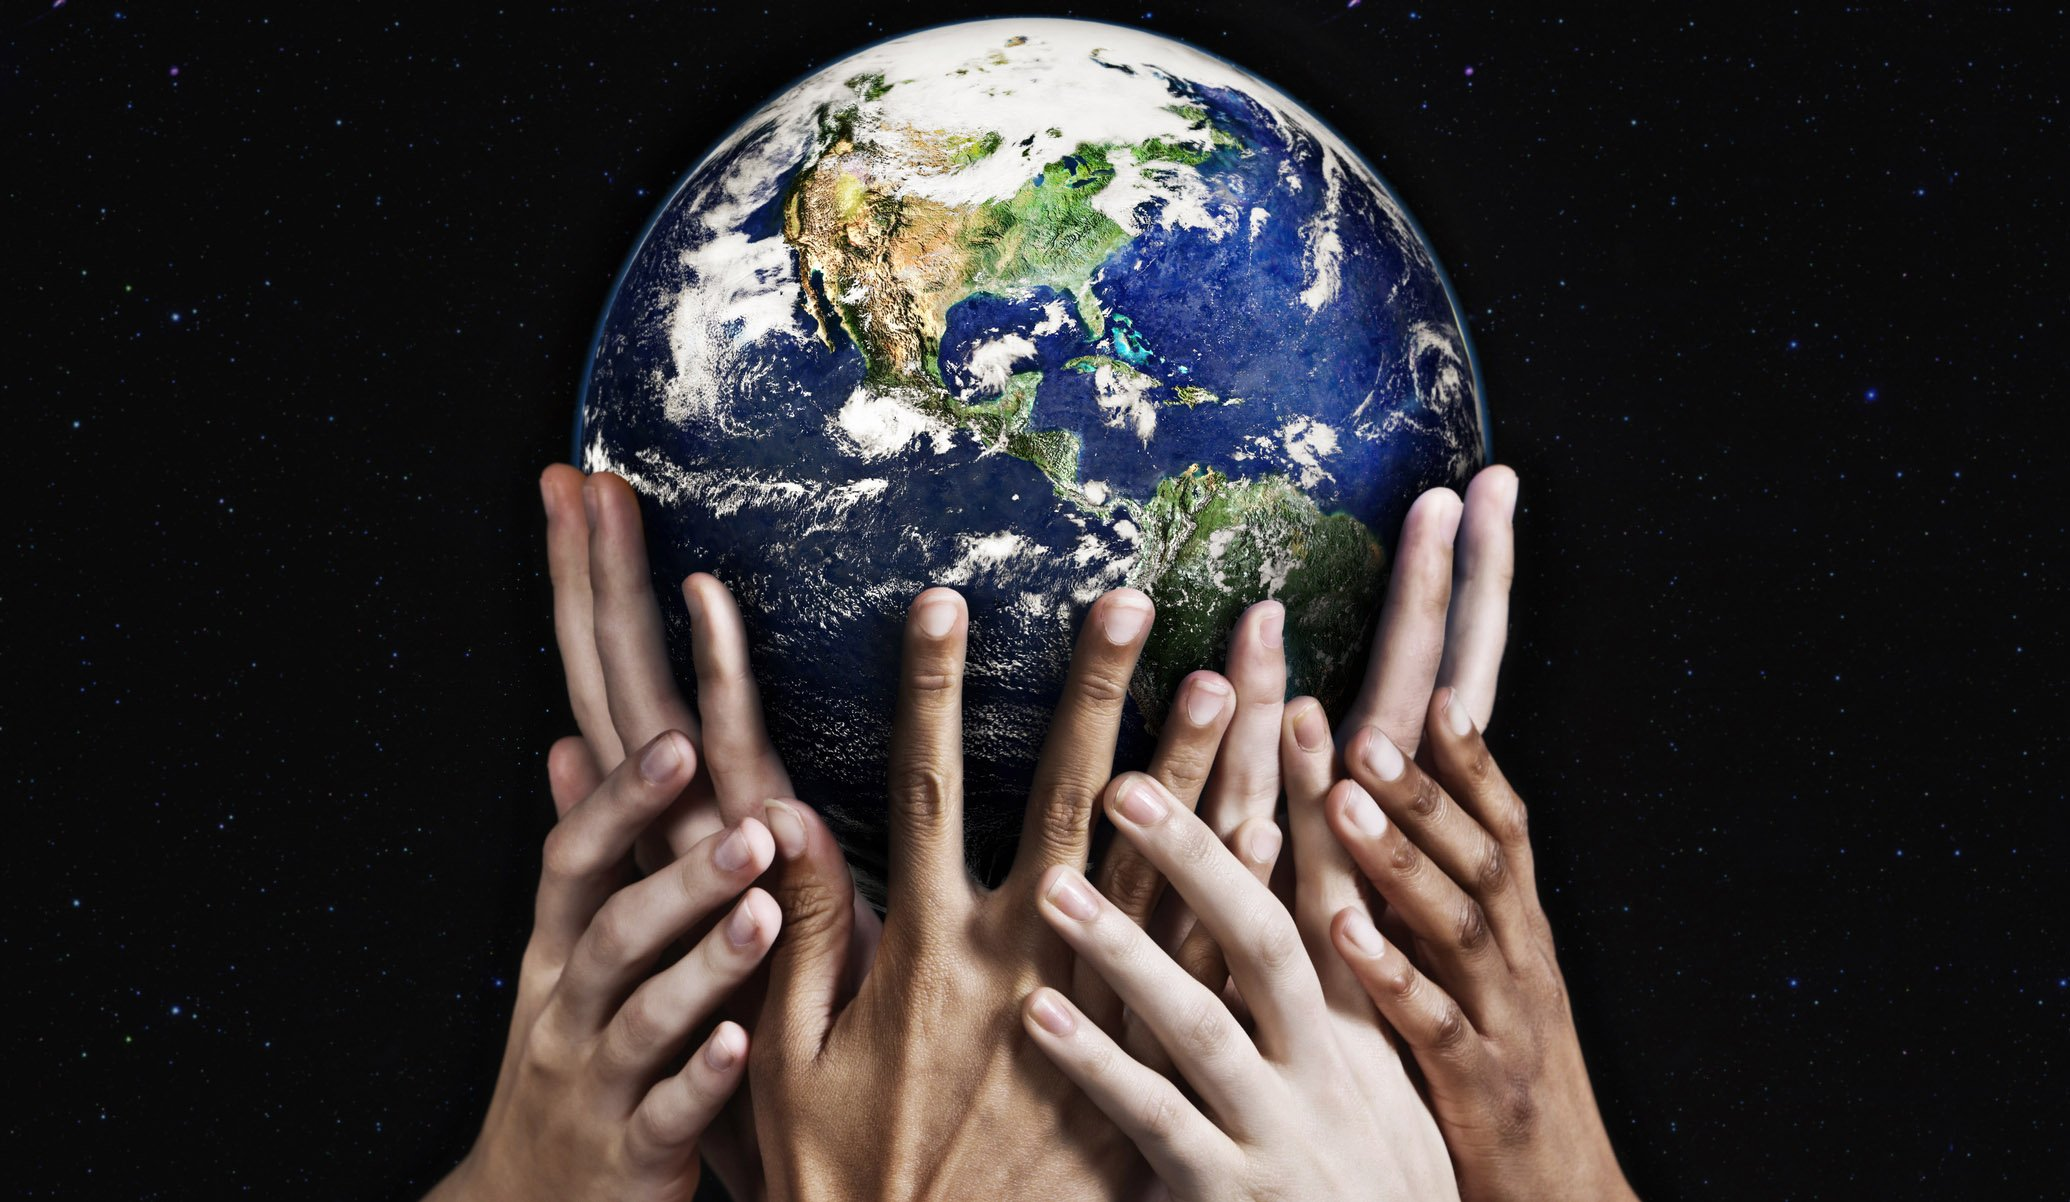 human hands supporting the earth